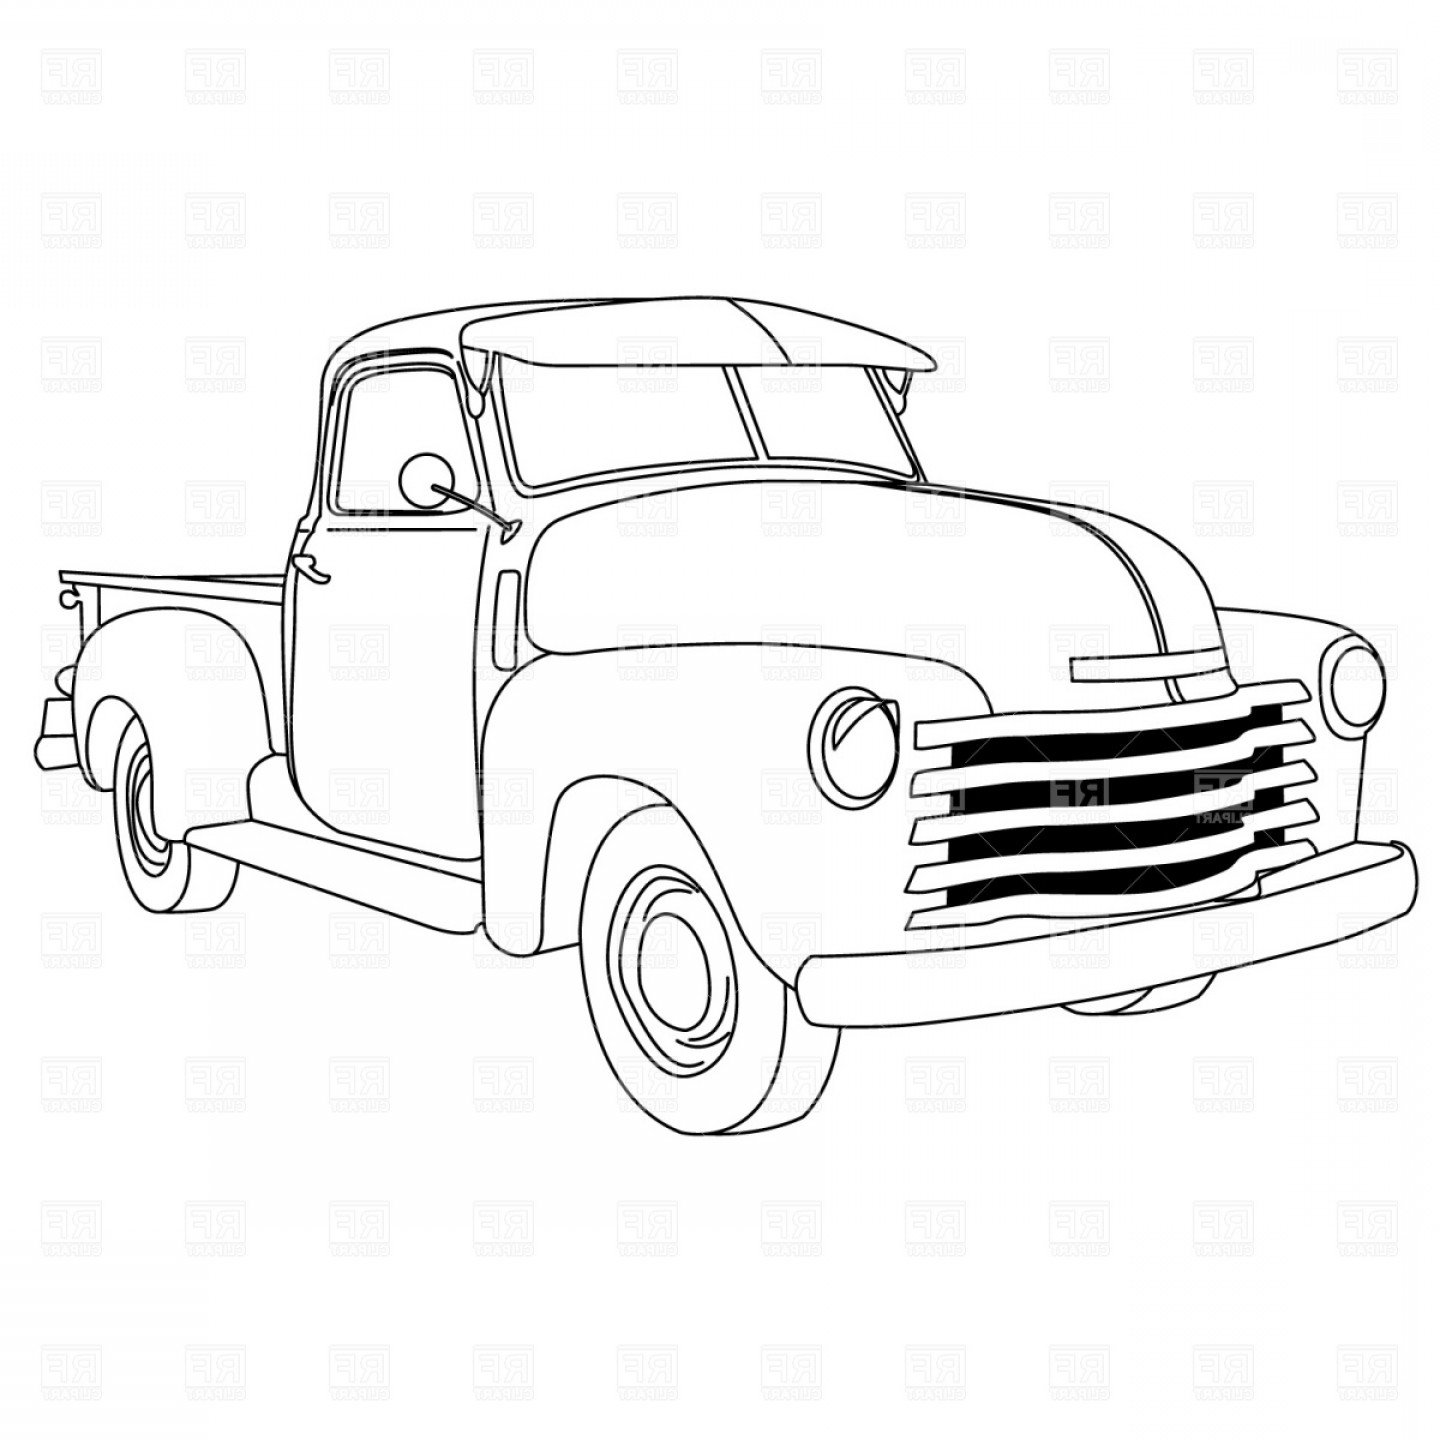 old truck vector at getdrawings free for personal use old Old Ford F-250 1440x1440 old american pick up truck vector clipart orangiausa